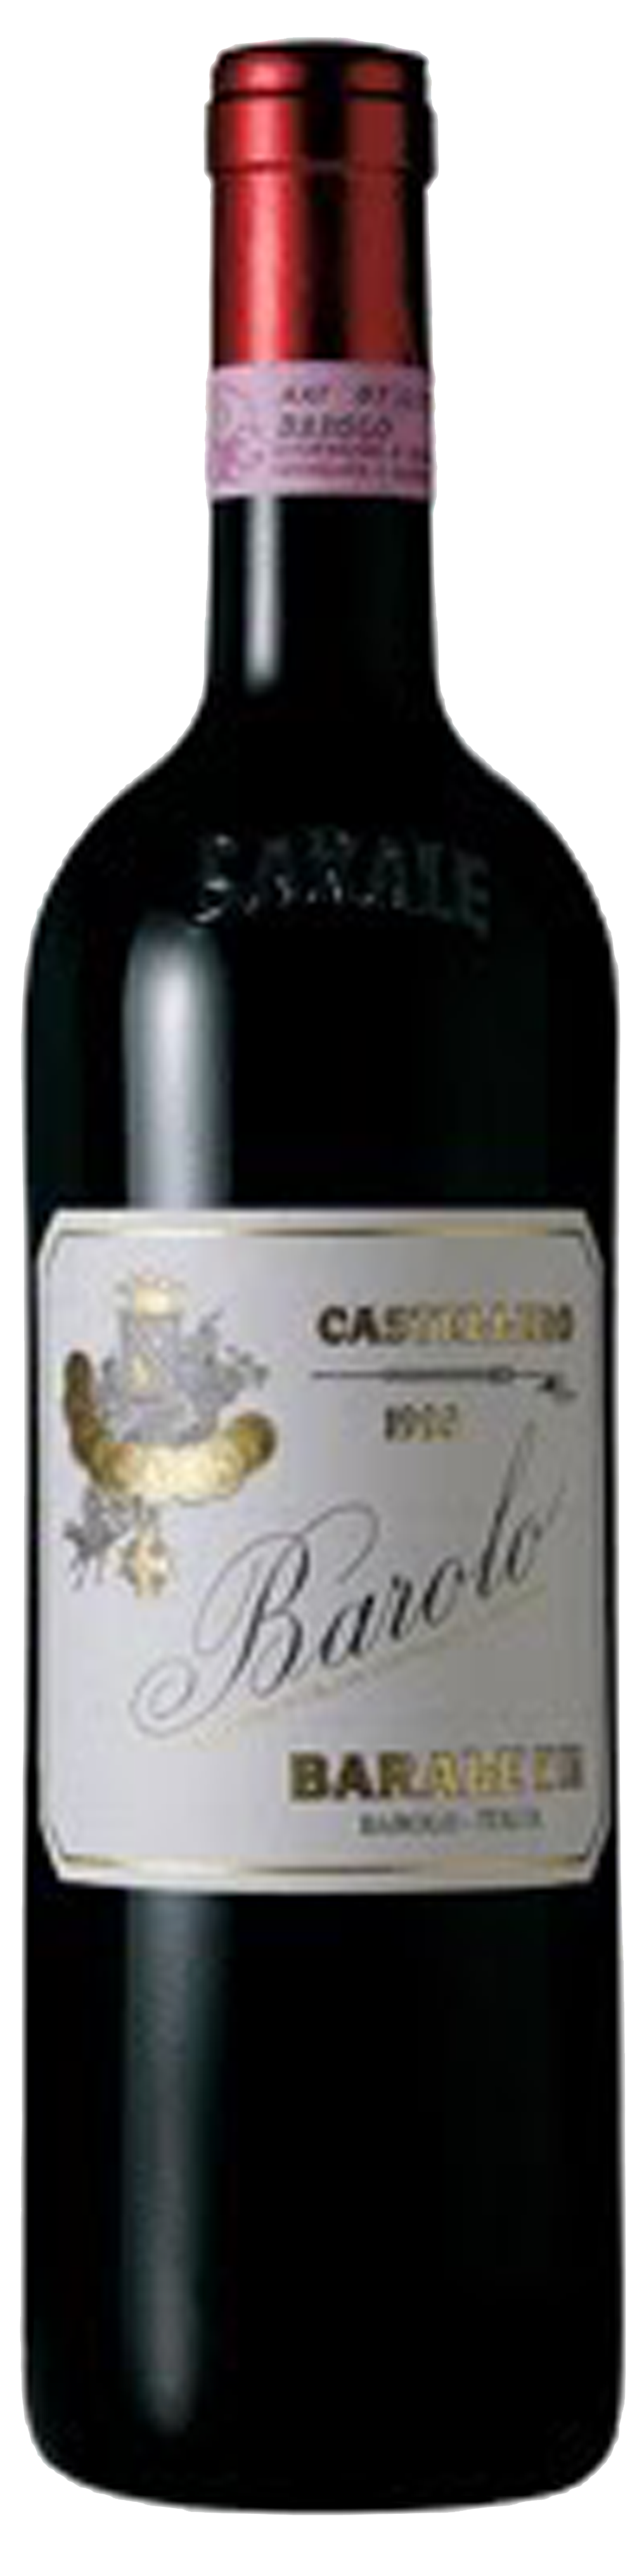 Image of product Barolo Castellero